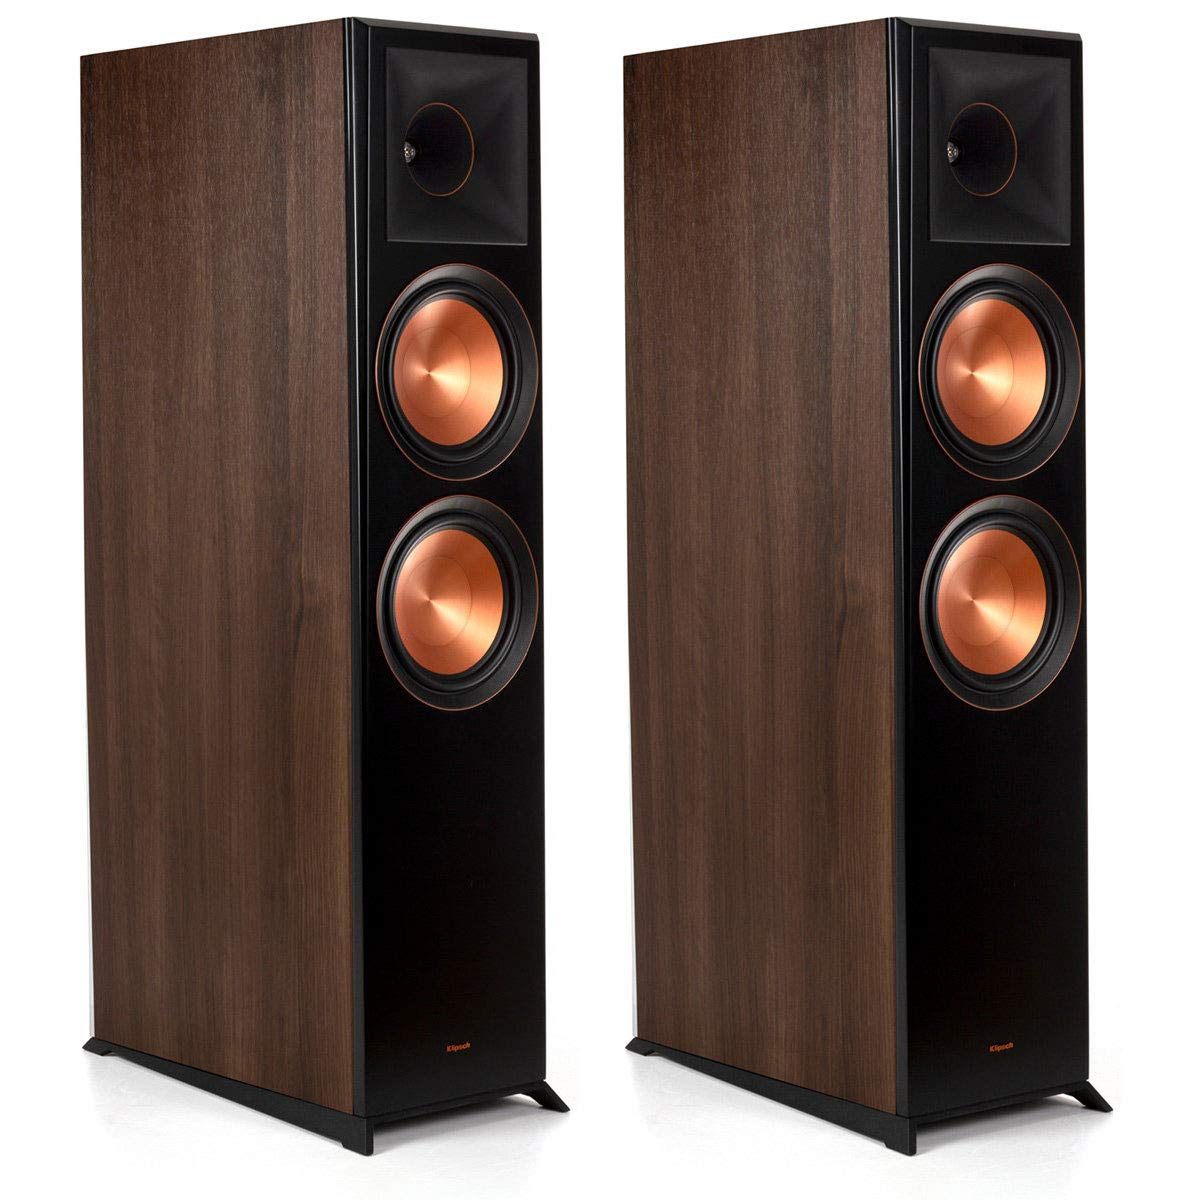 Klipsch RP-8060FA-W Walnut Floorstanding Speaker - Pair